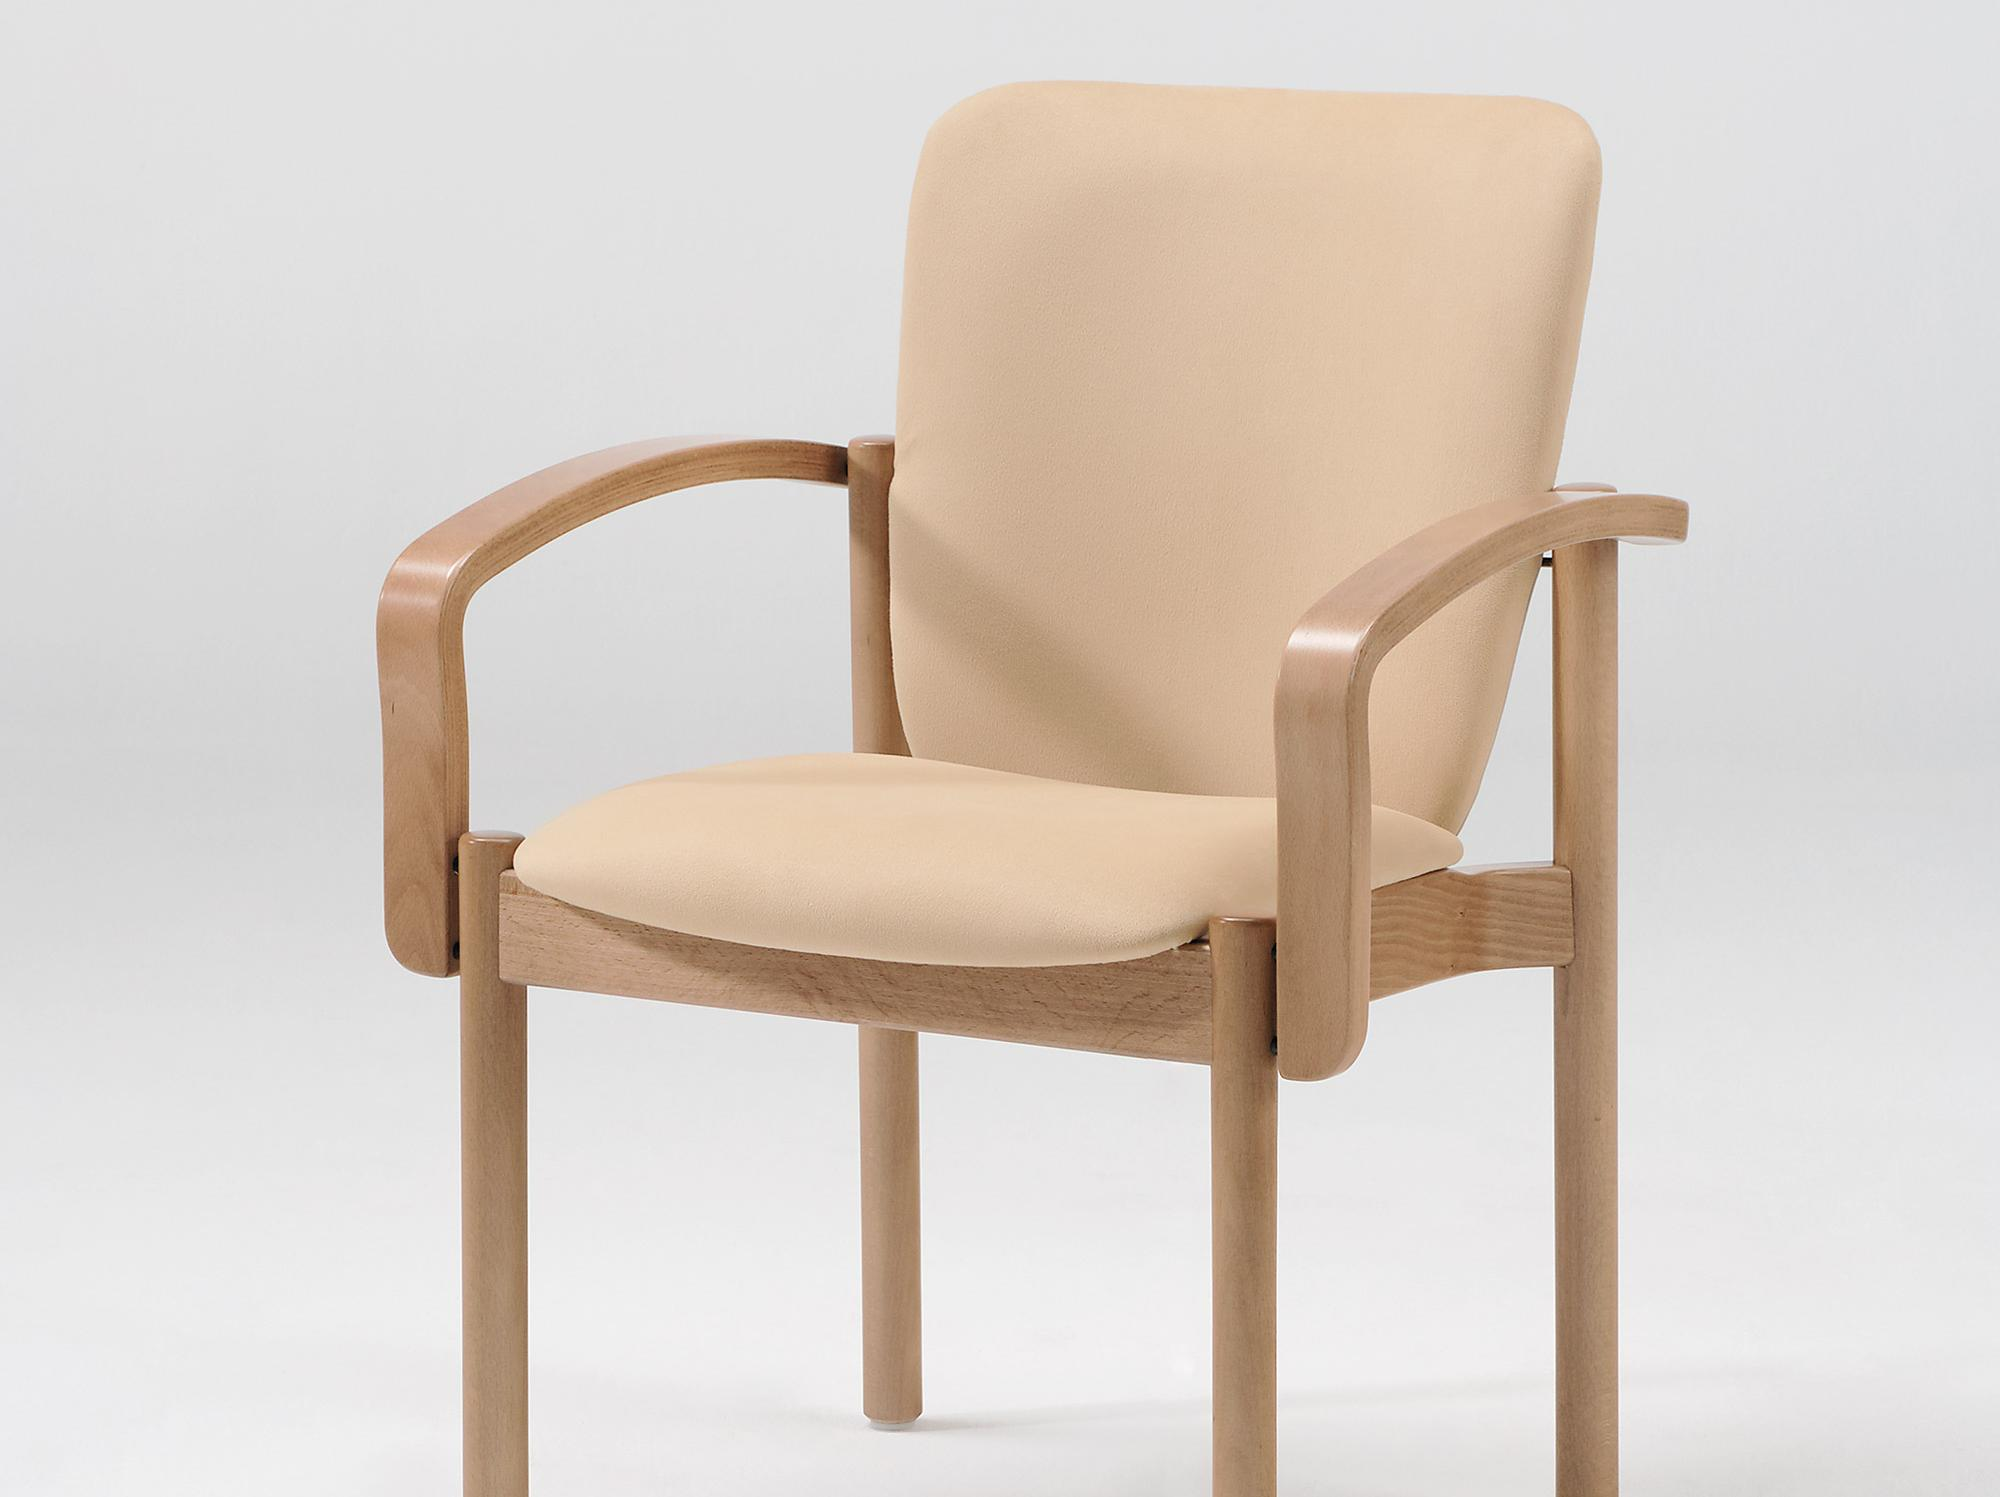 The Optimo model as a stacking armchair without handle